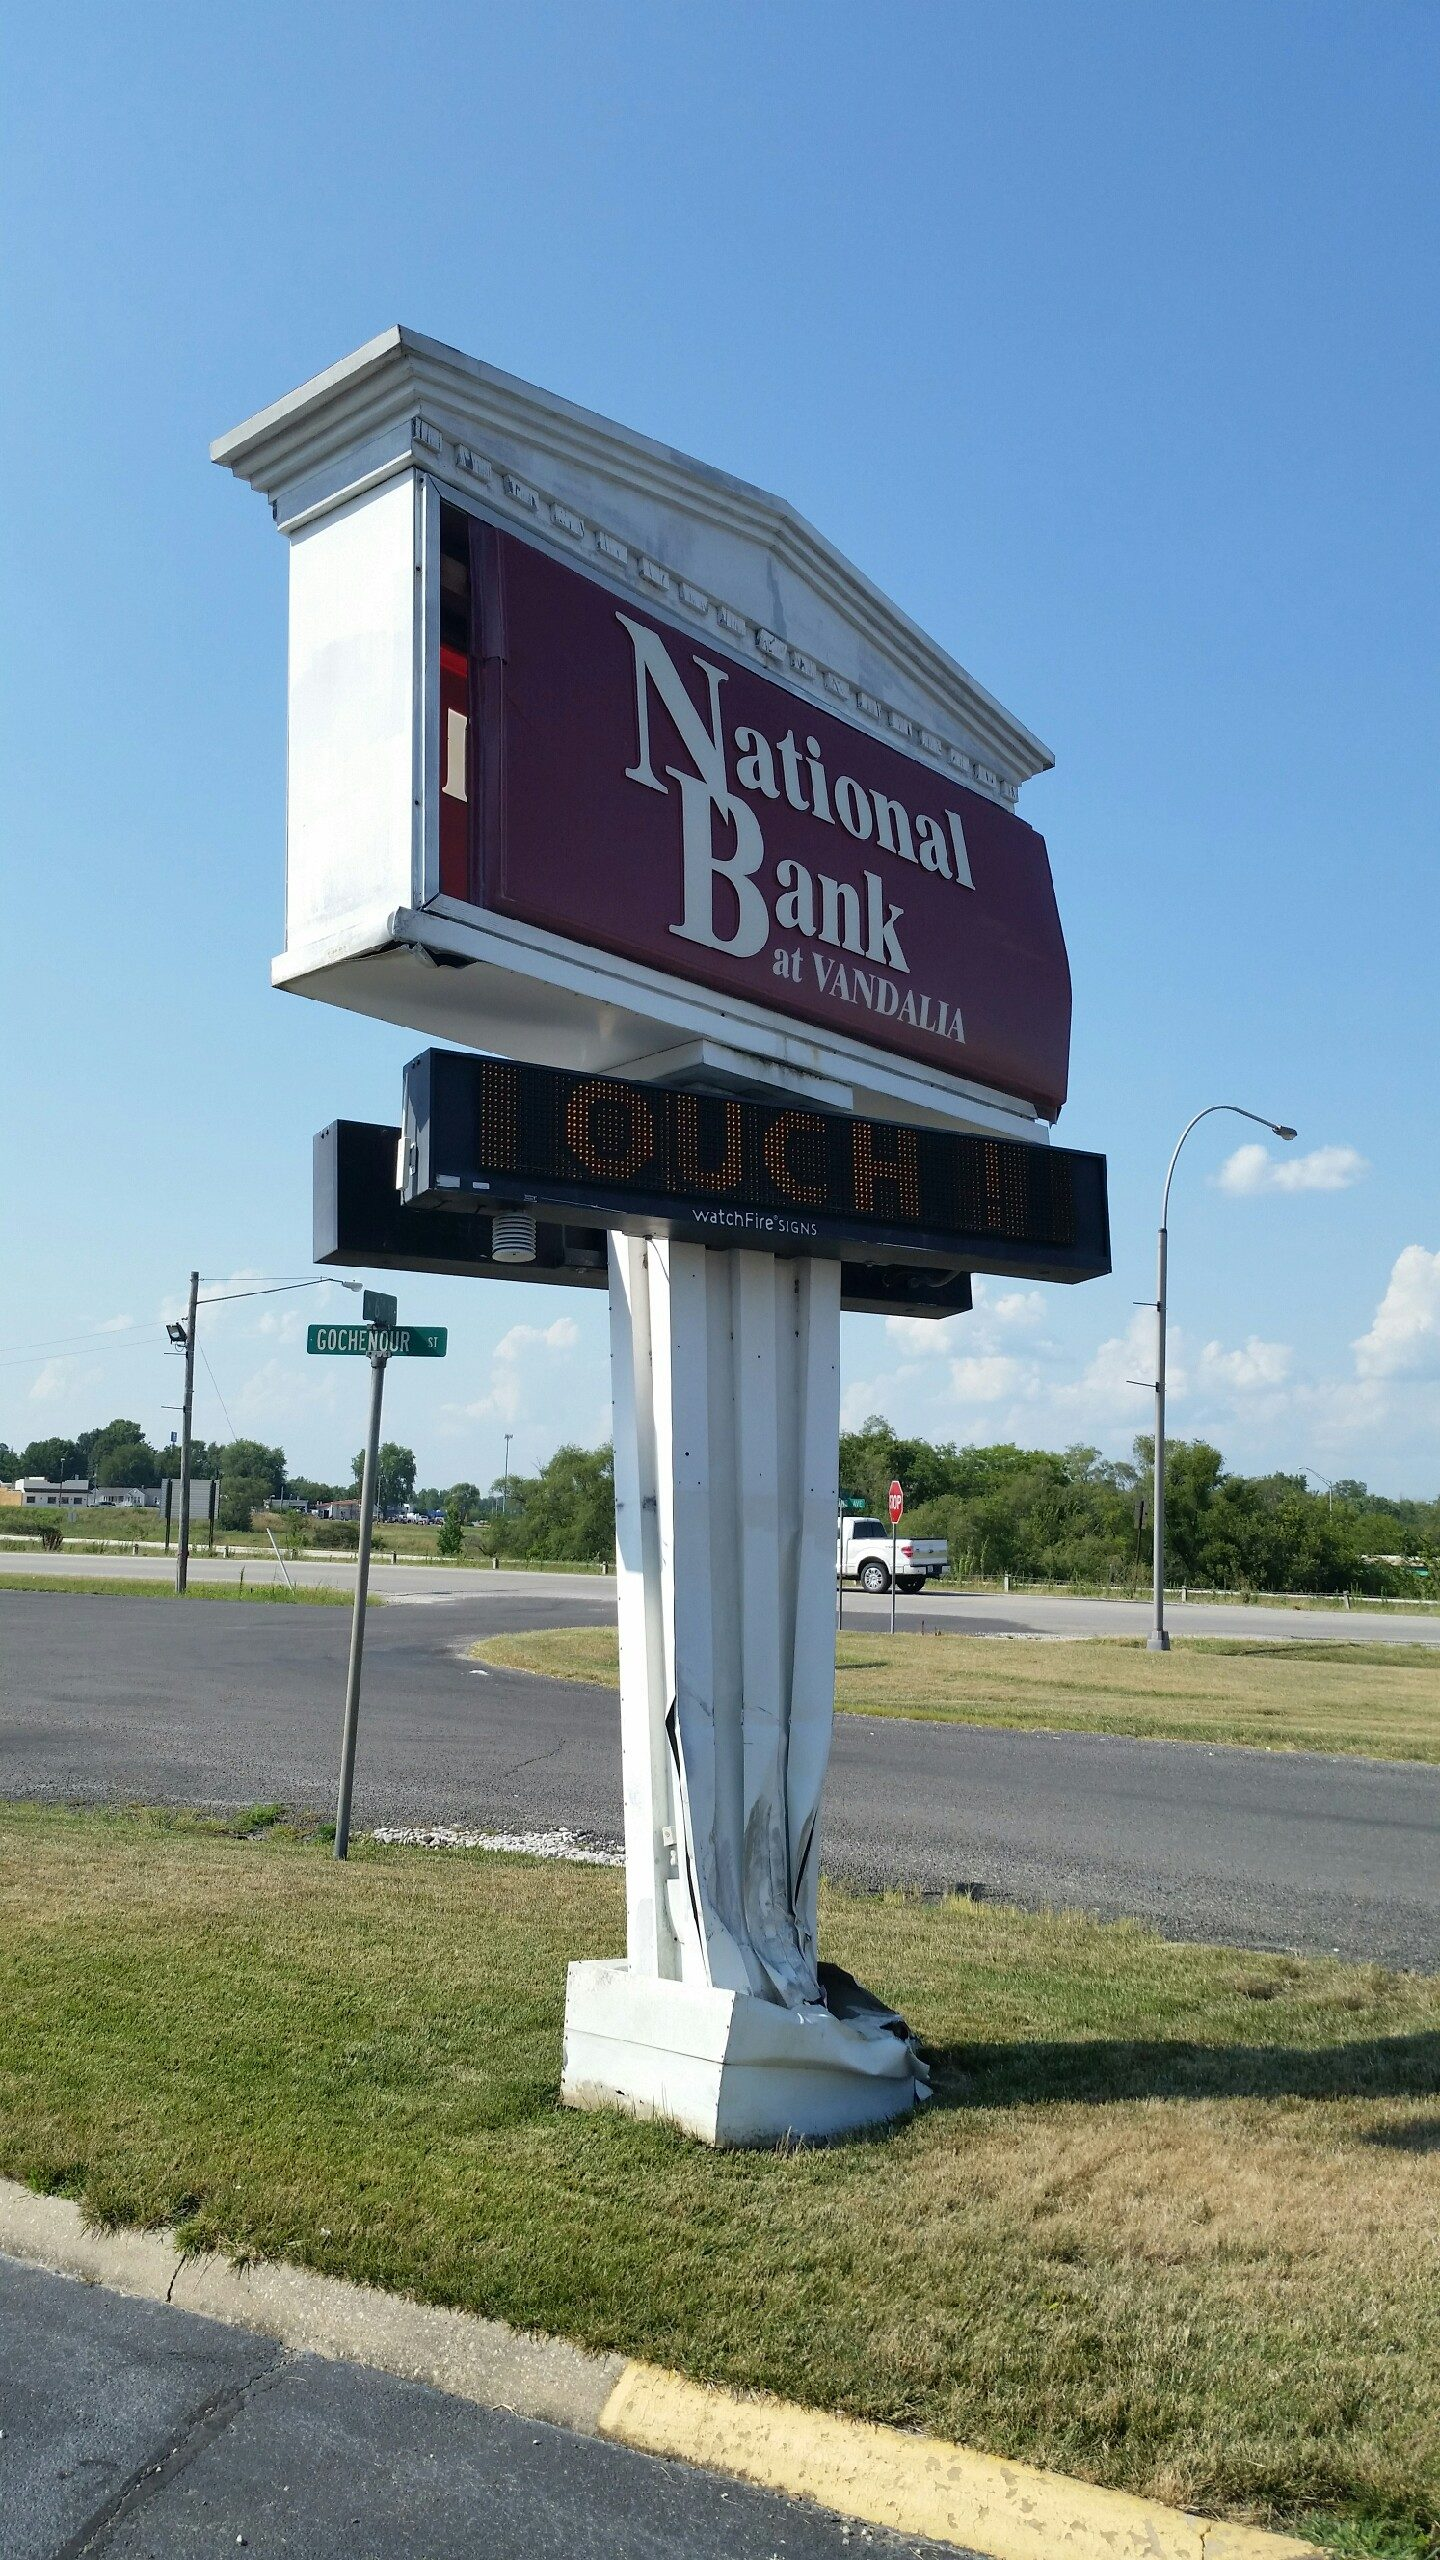 National Bank sign struck and damaged on Friday